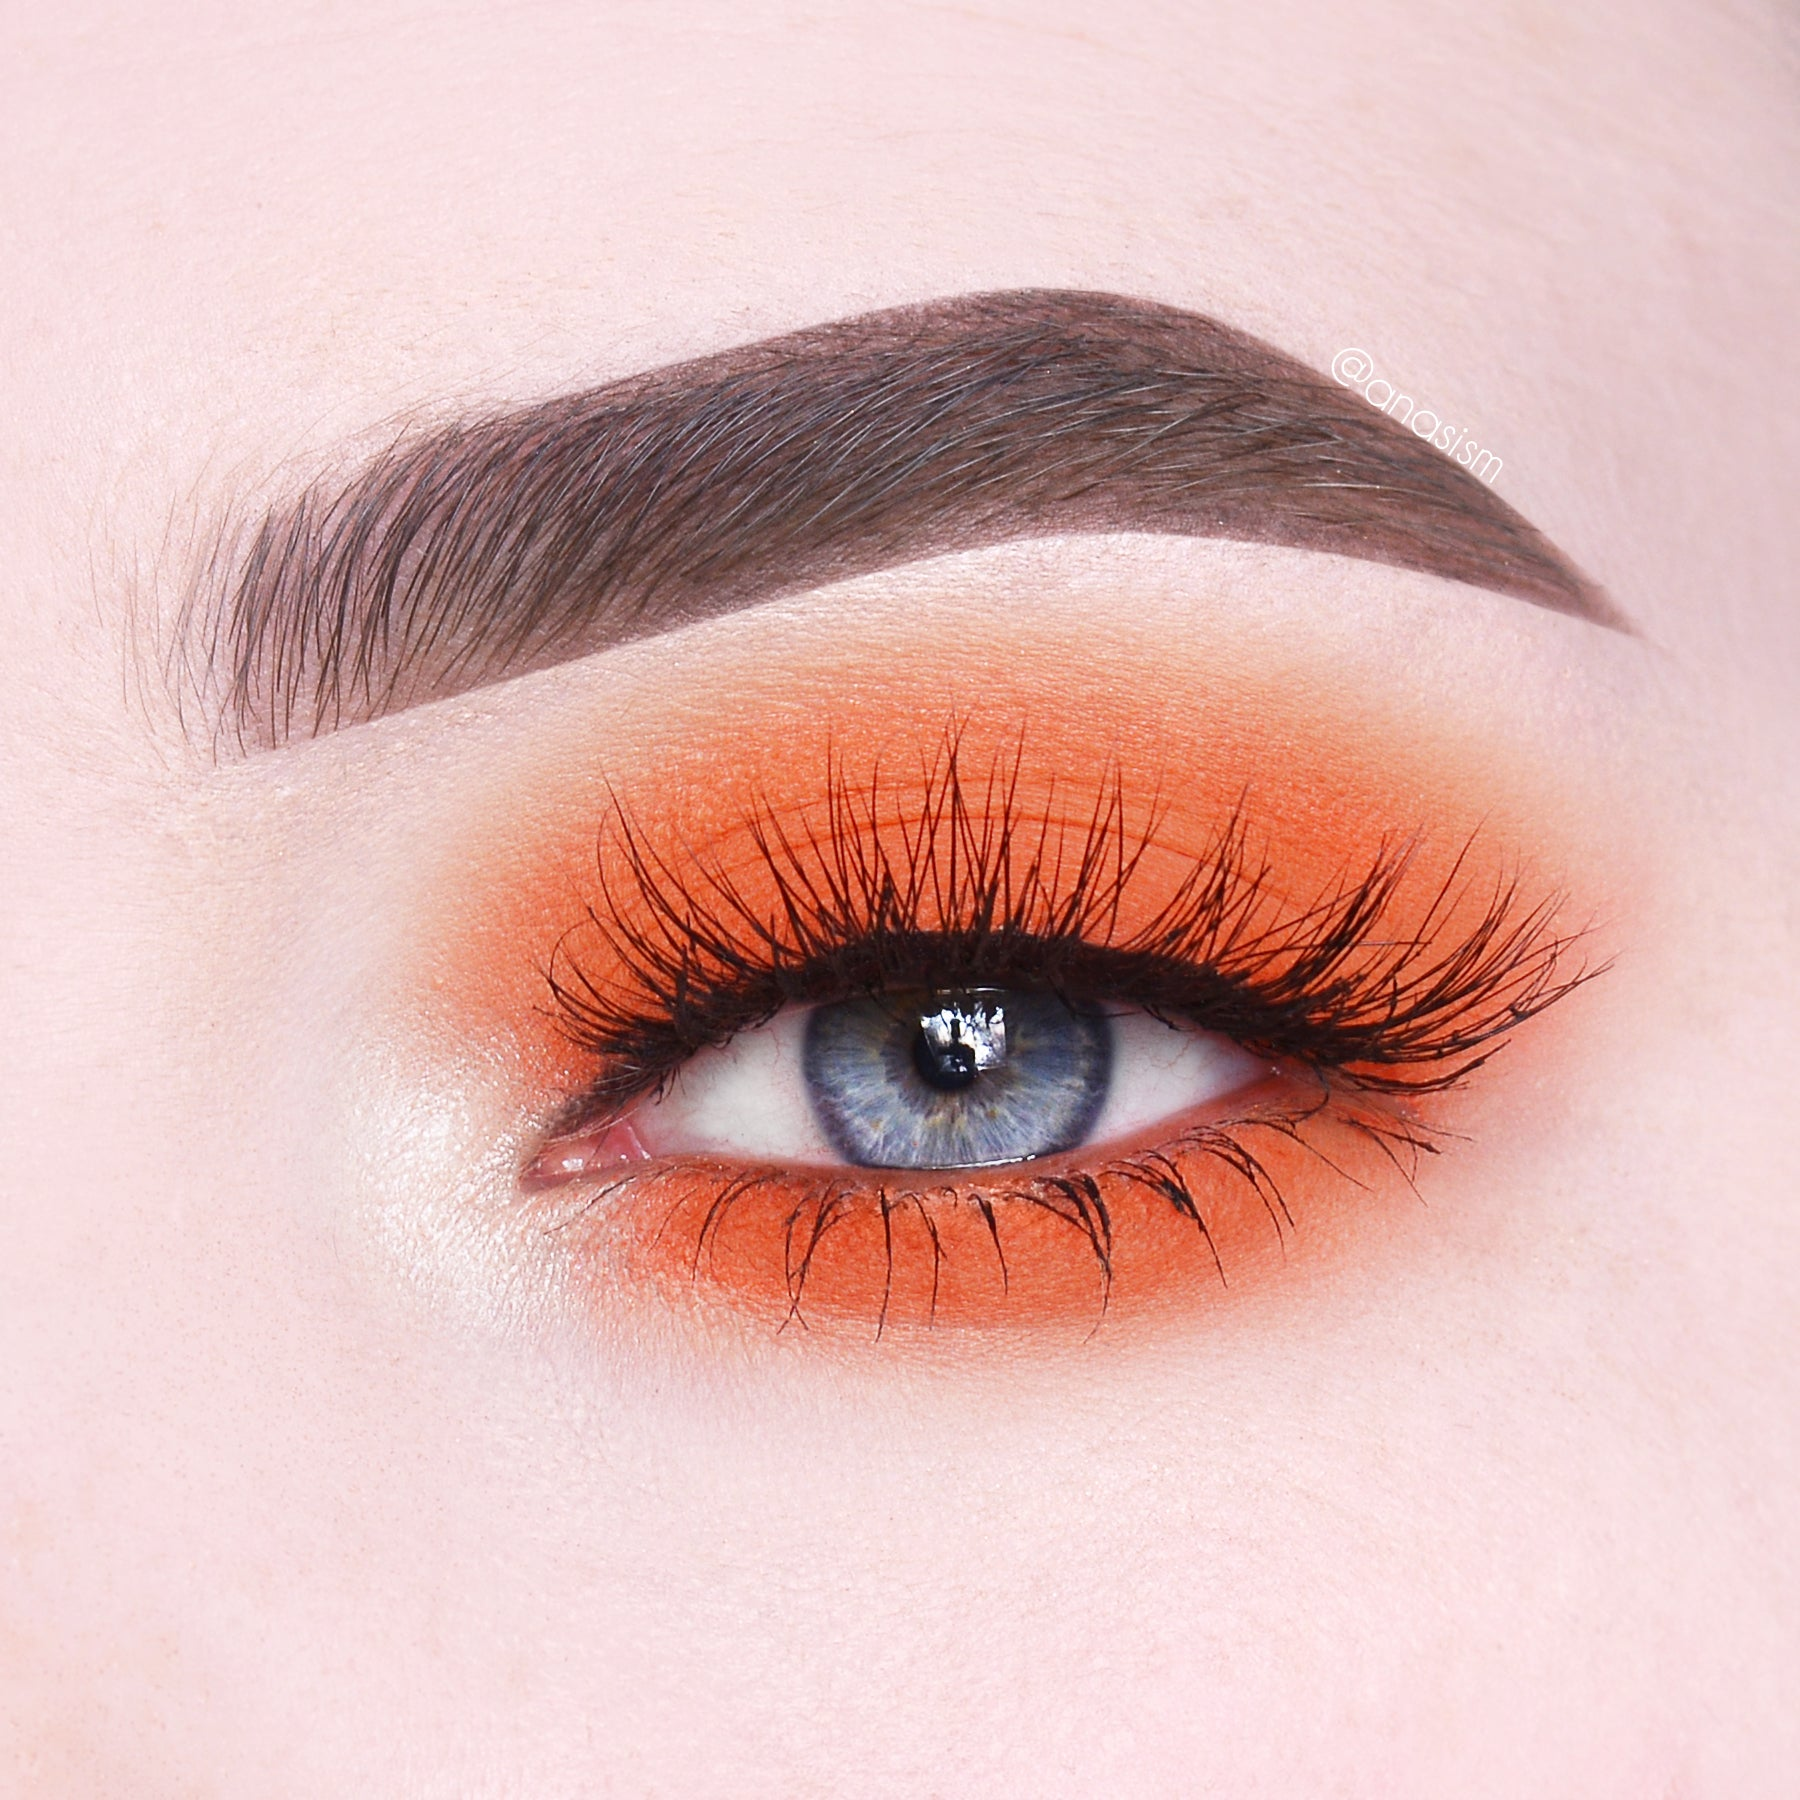 04 ANAS Single Eyeshadow in Sunset